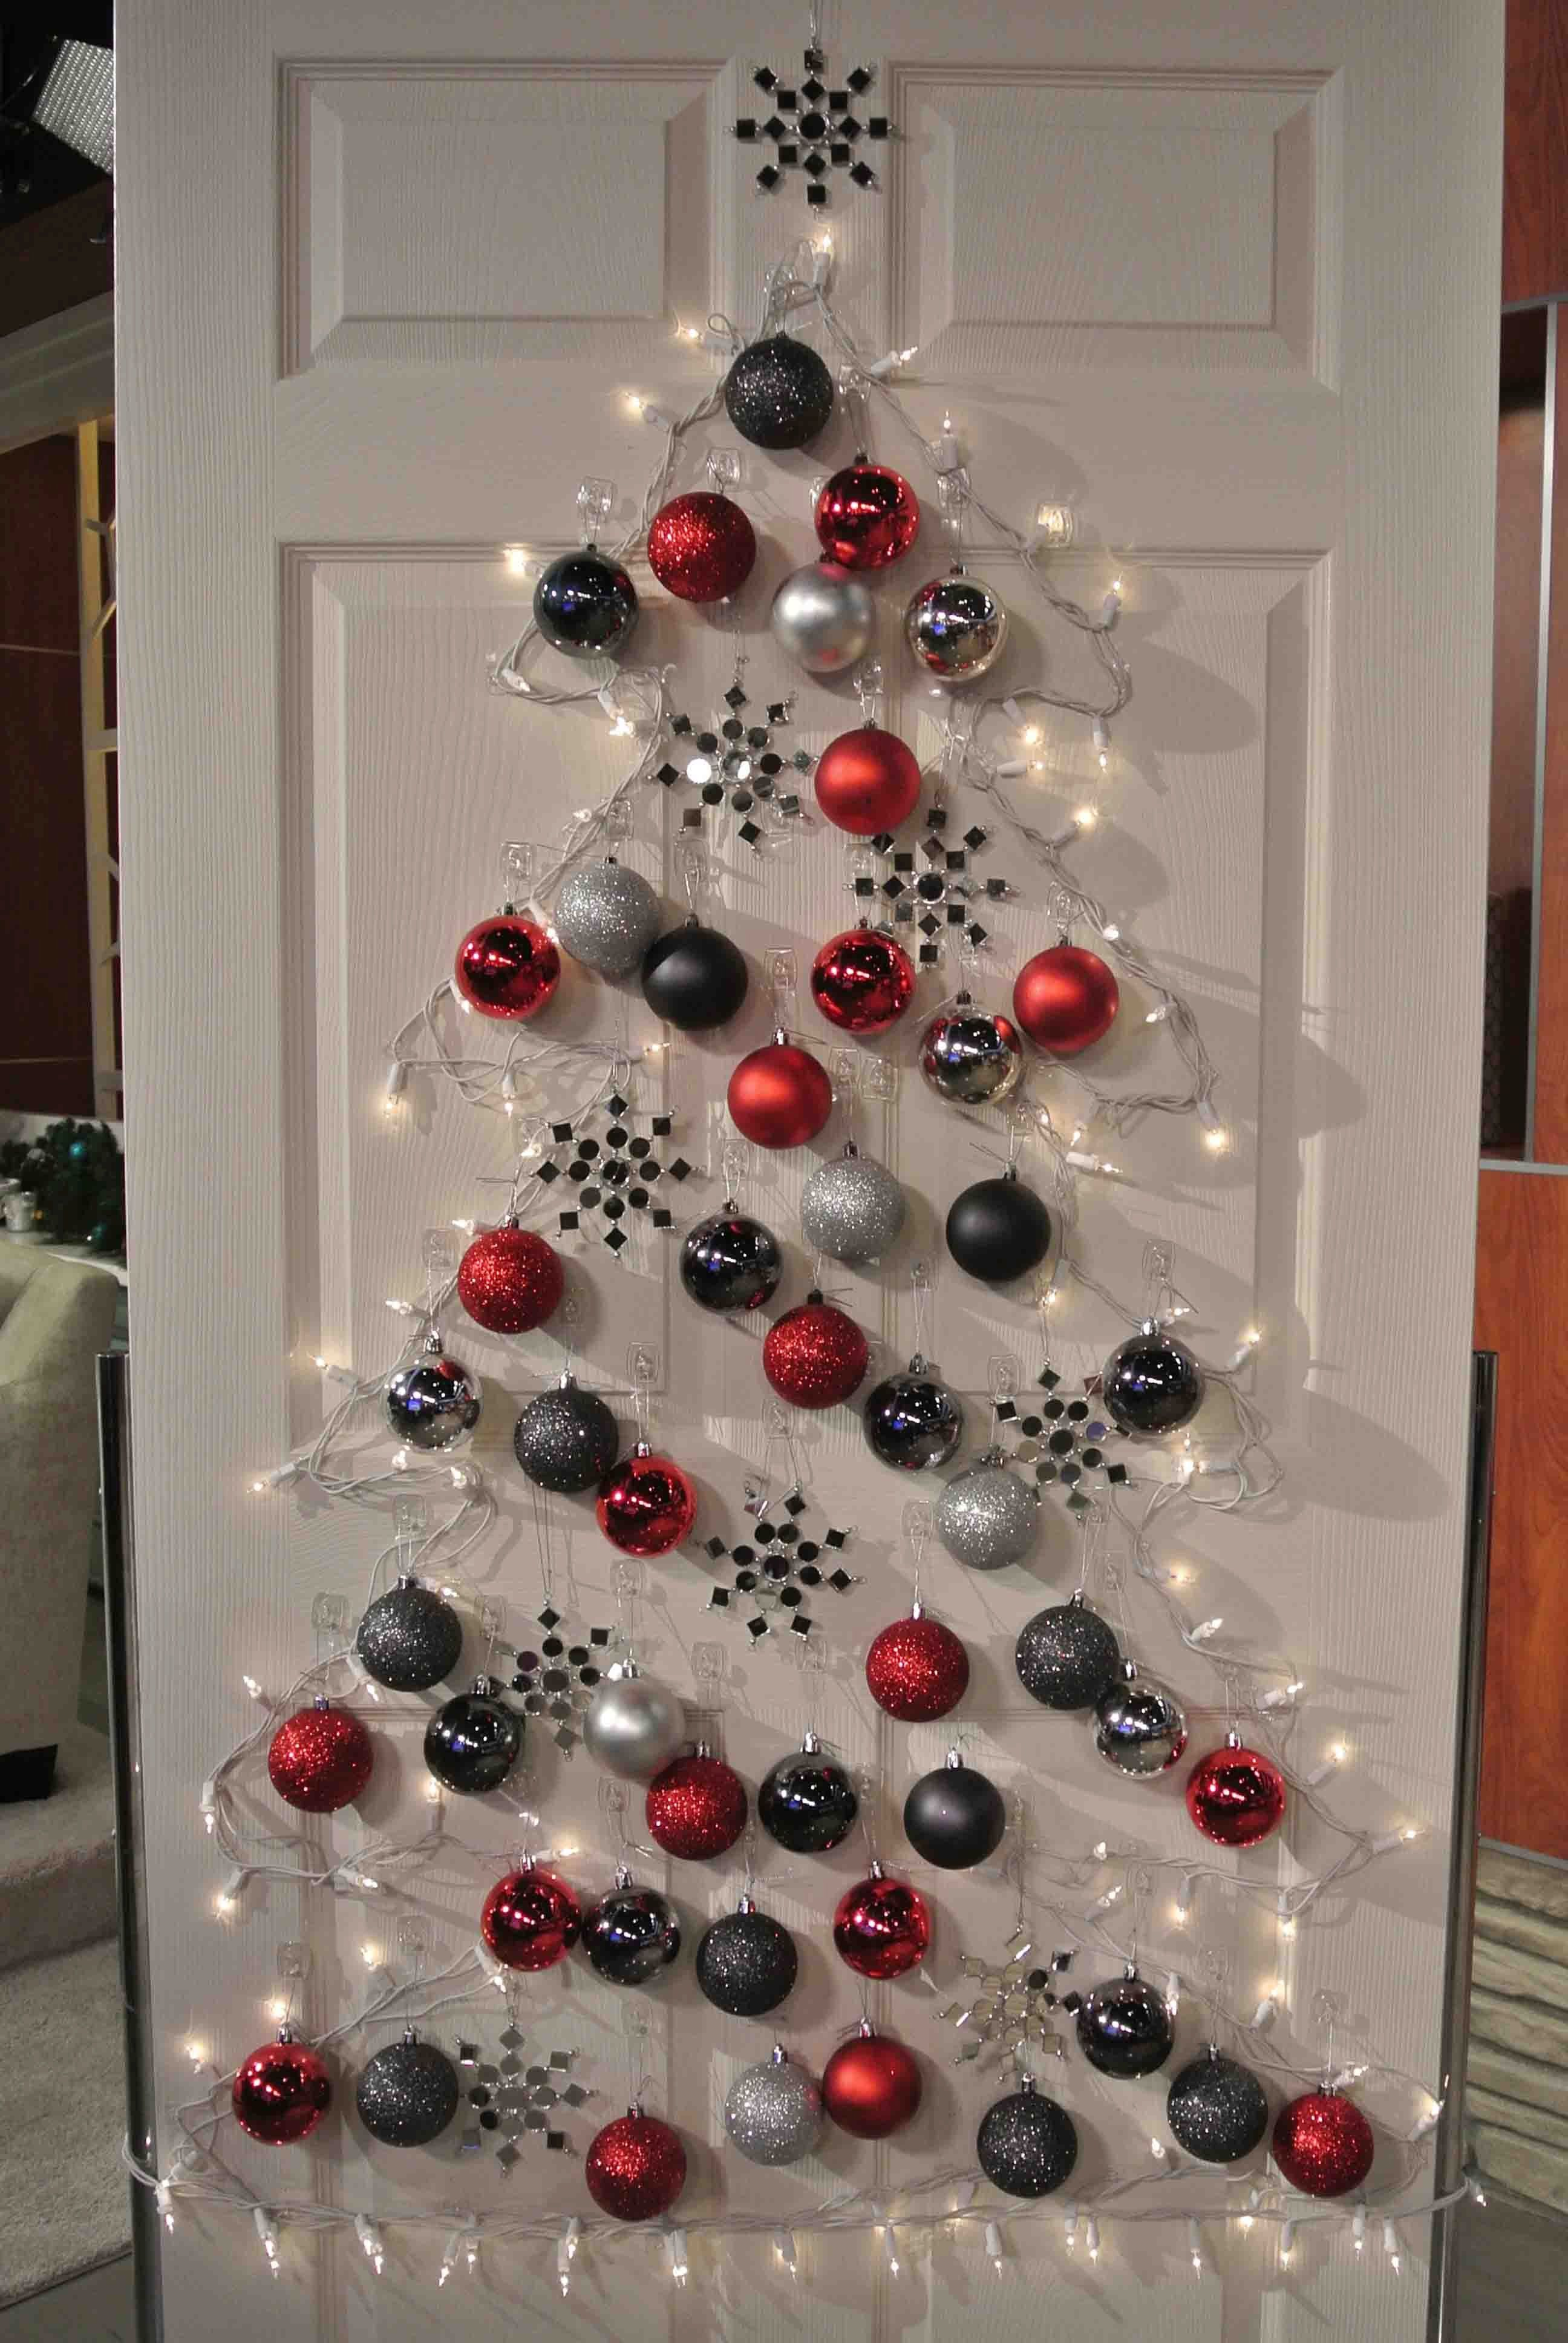 Christmas decoration ideas designed by christmas tree with white lamp and red silver and